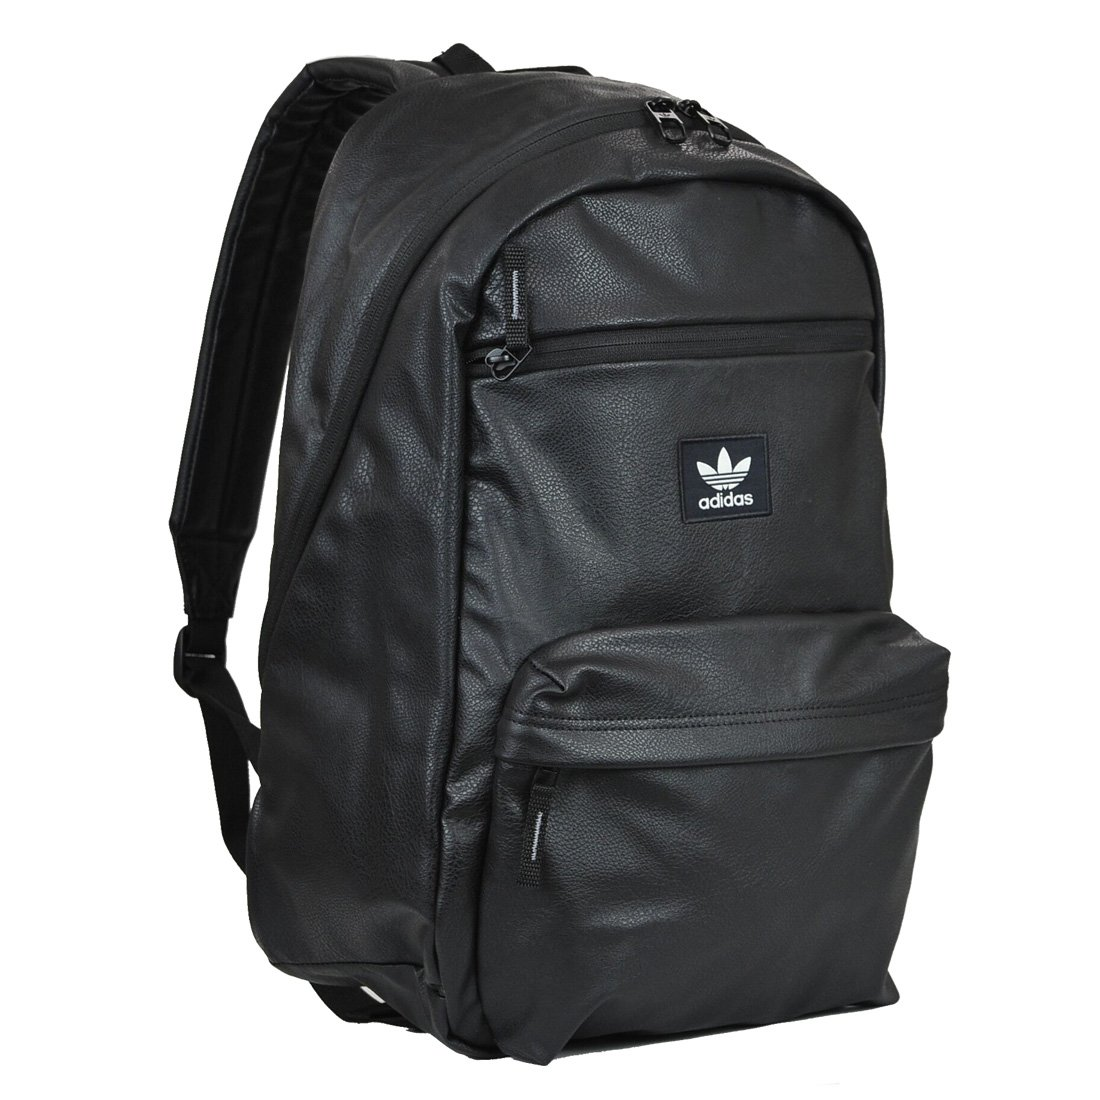 adidas NATURAL PU LEATHER BACKPACK バックパック (CI1452) [並行輸入品]   B0762DG7ZV